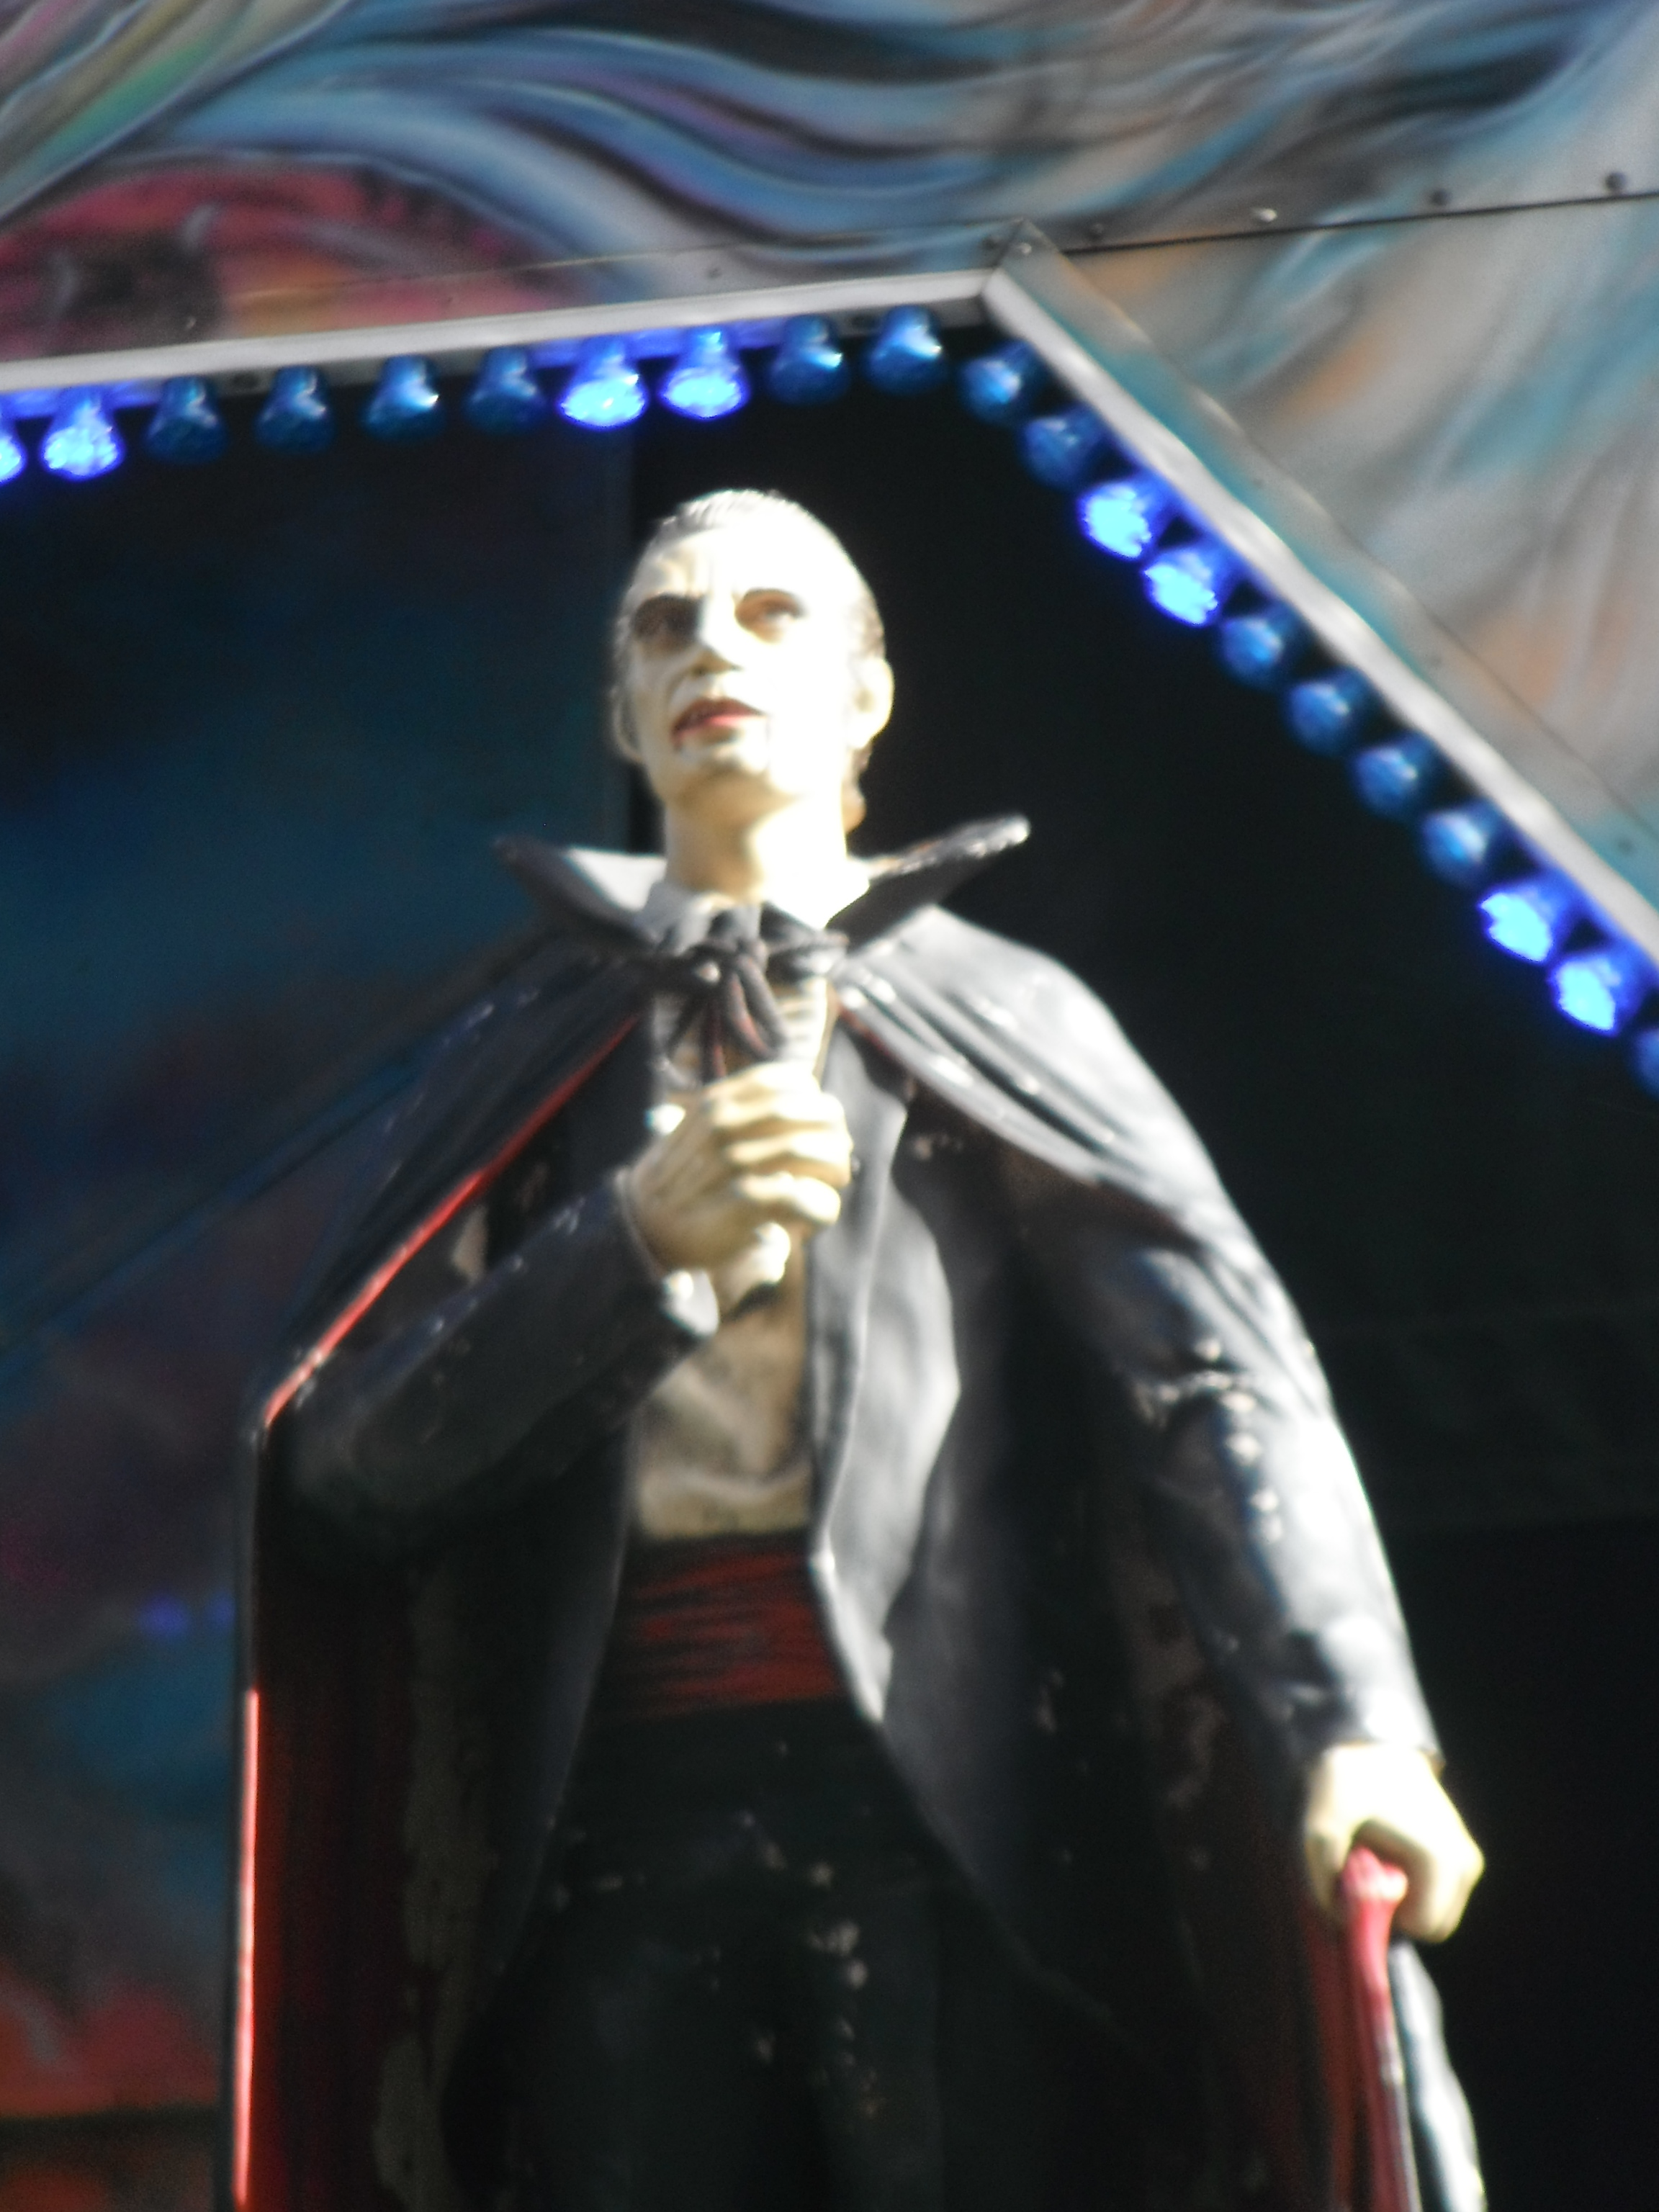 Photo taken by me – Dracula